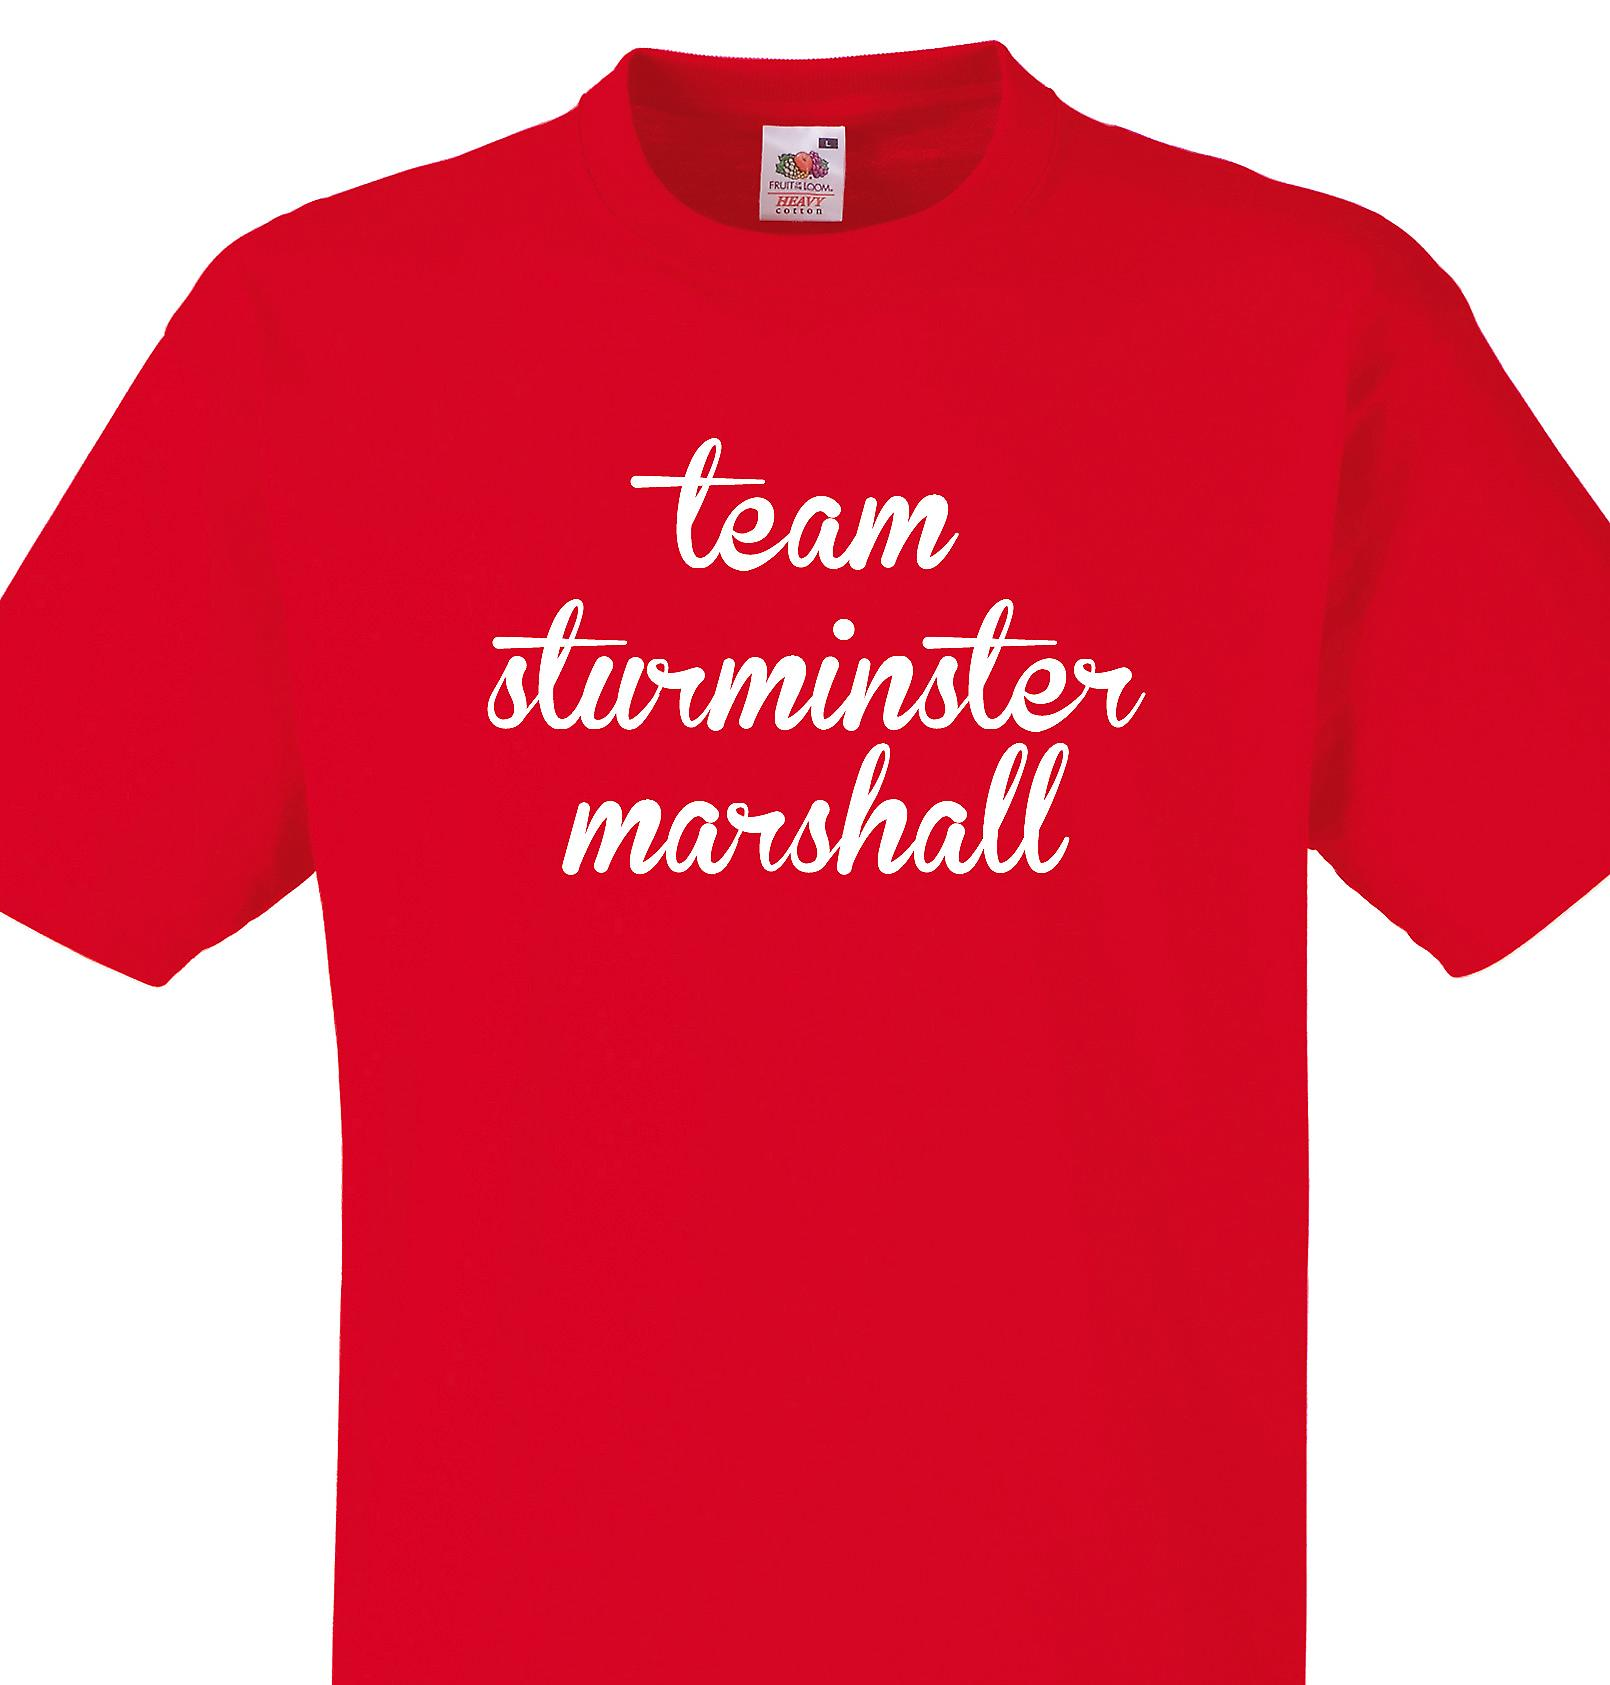 Team Sturminster marshall Red T shirt